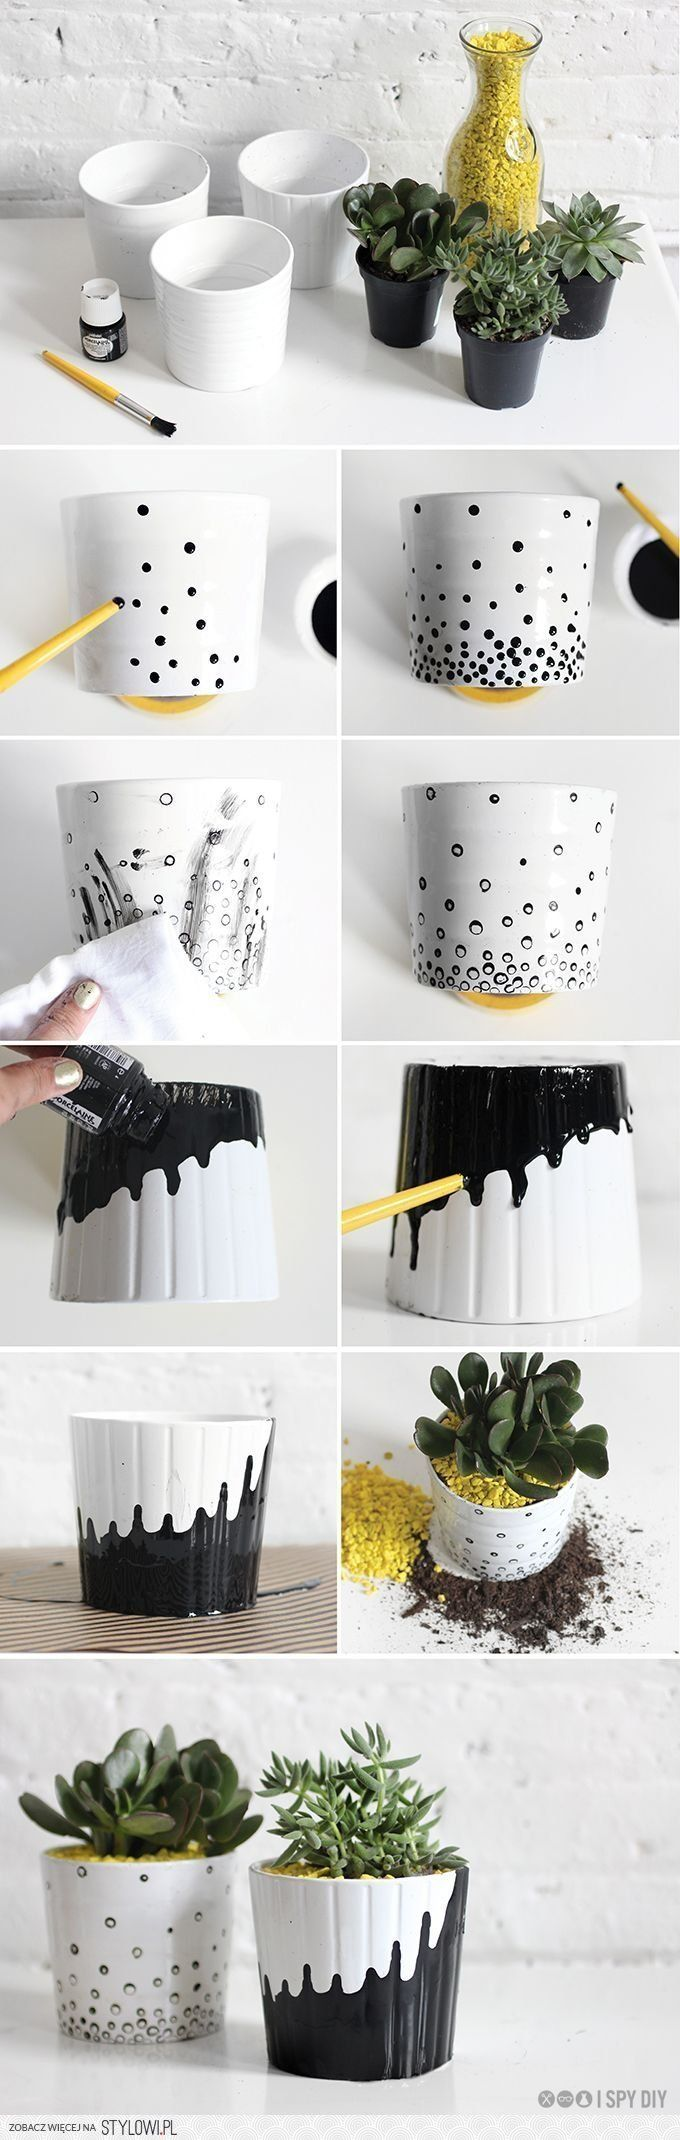 best my garden style images on pinterest decorated flower pots